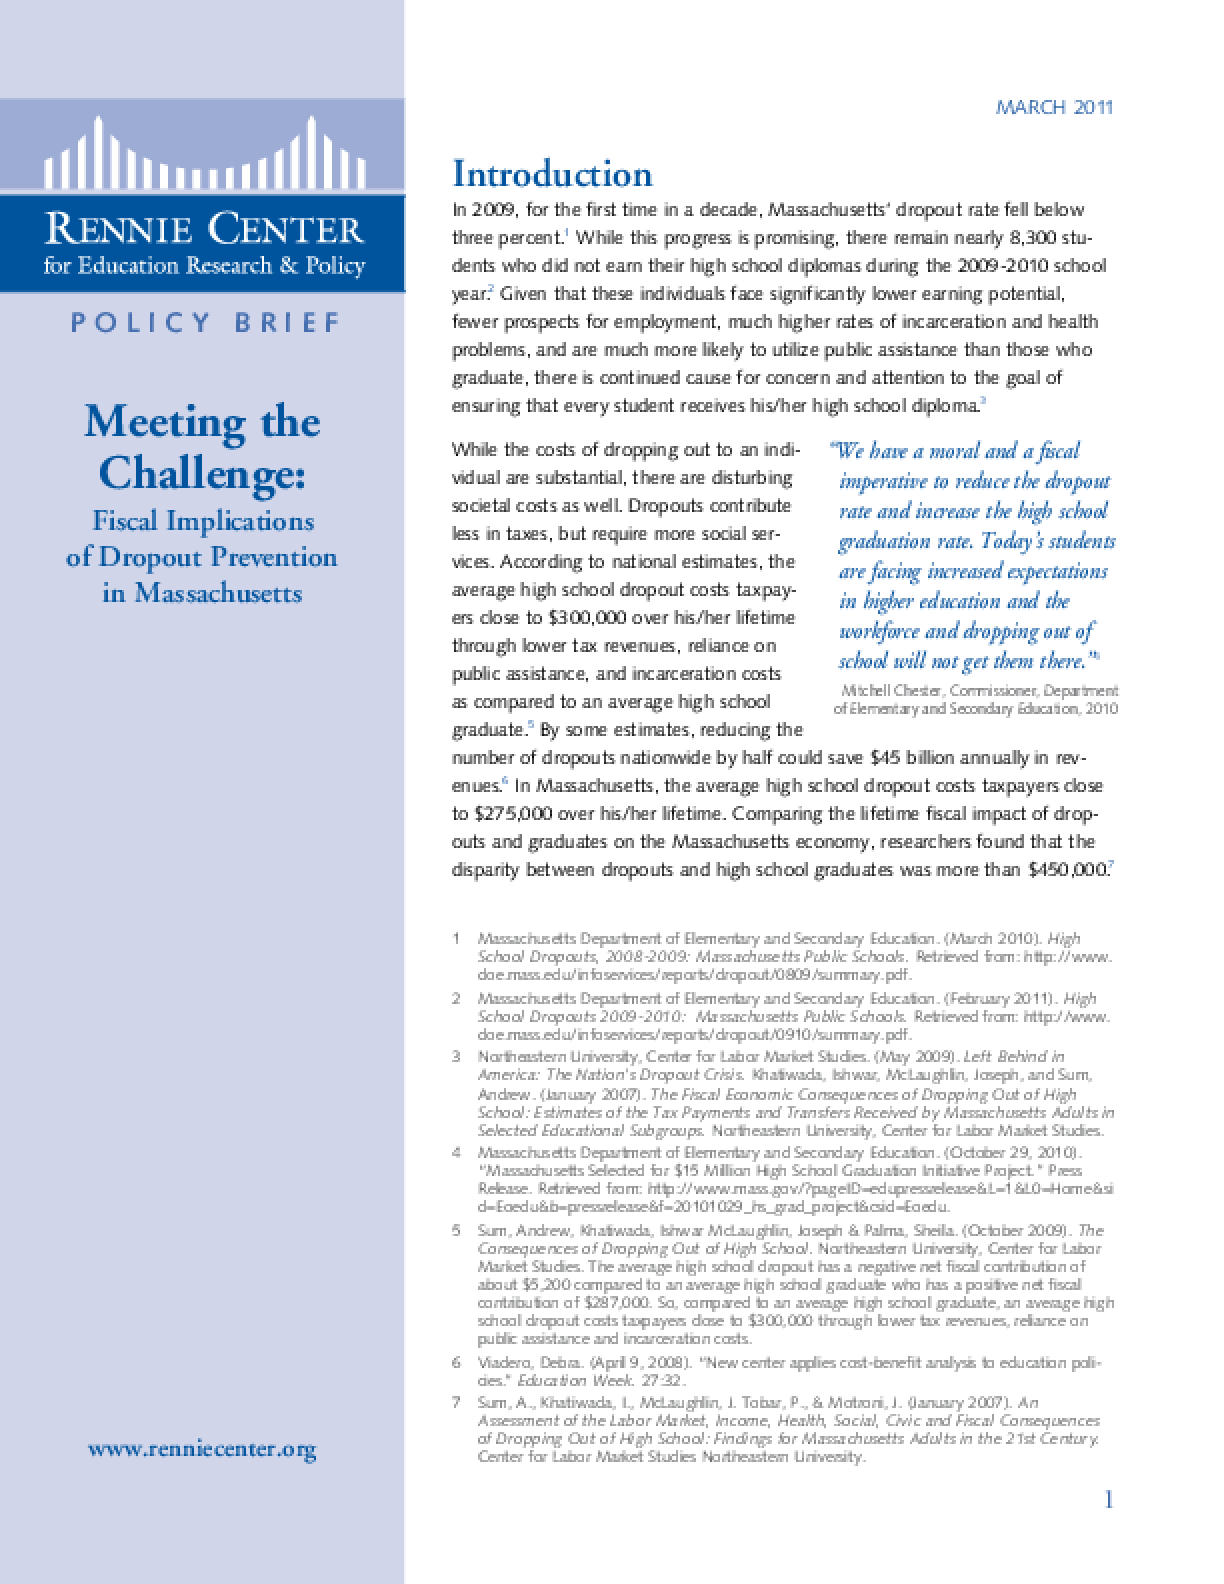 Meeting the Challenge: Fiscal Implications of Dropout Prevention in Massachusetts